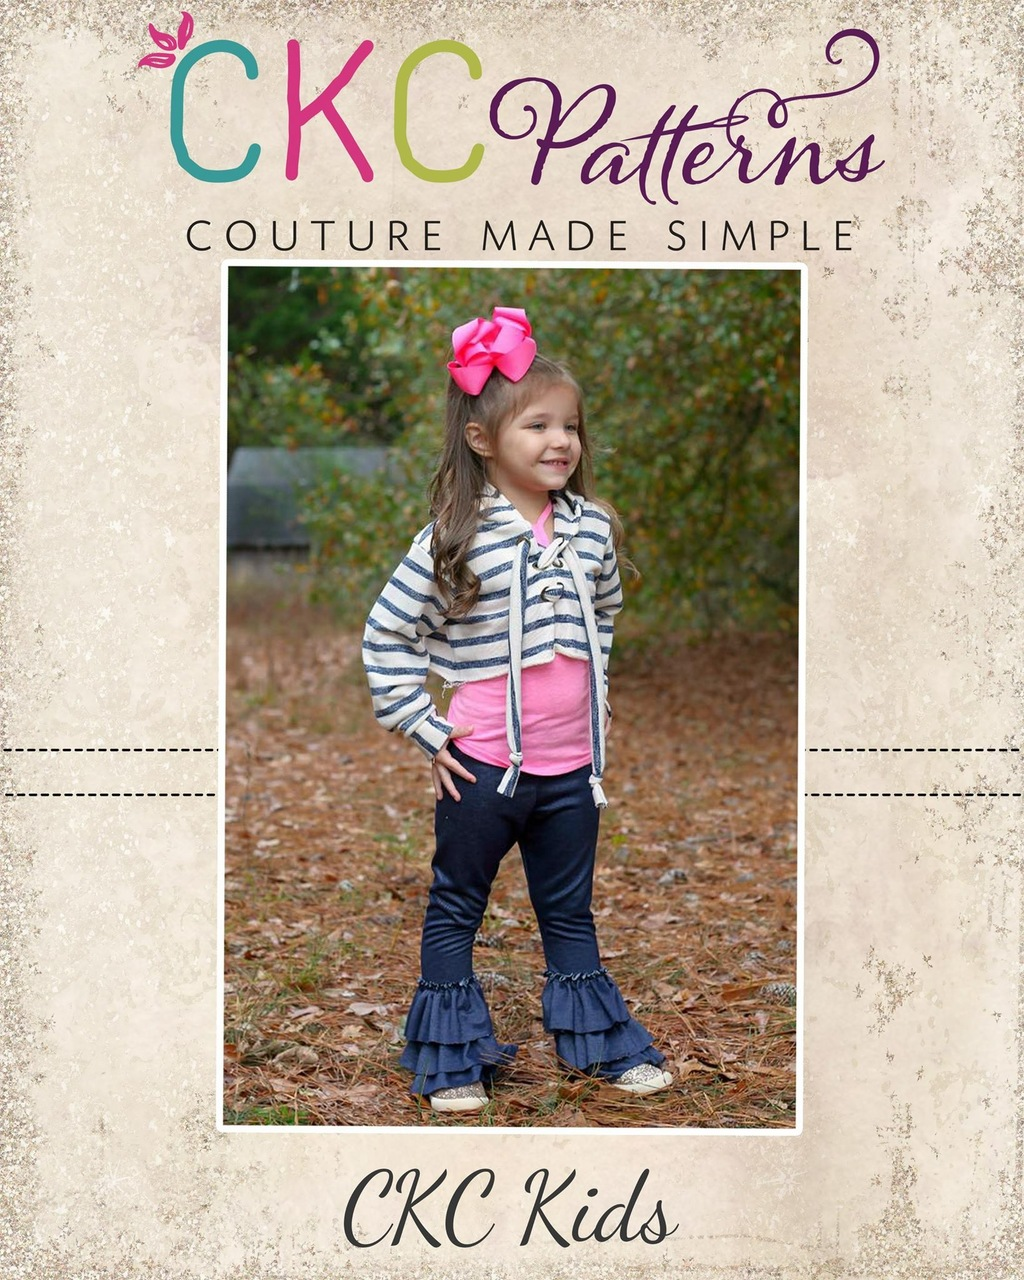 Iggy's Cropped Hoodie Sizes 2T to 14 Kids PDF Pattern